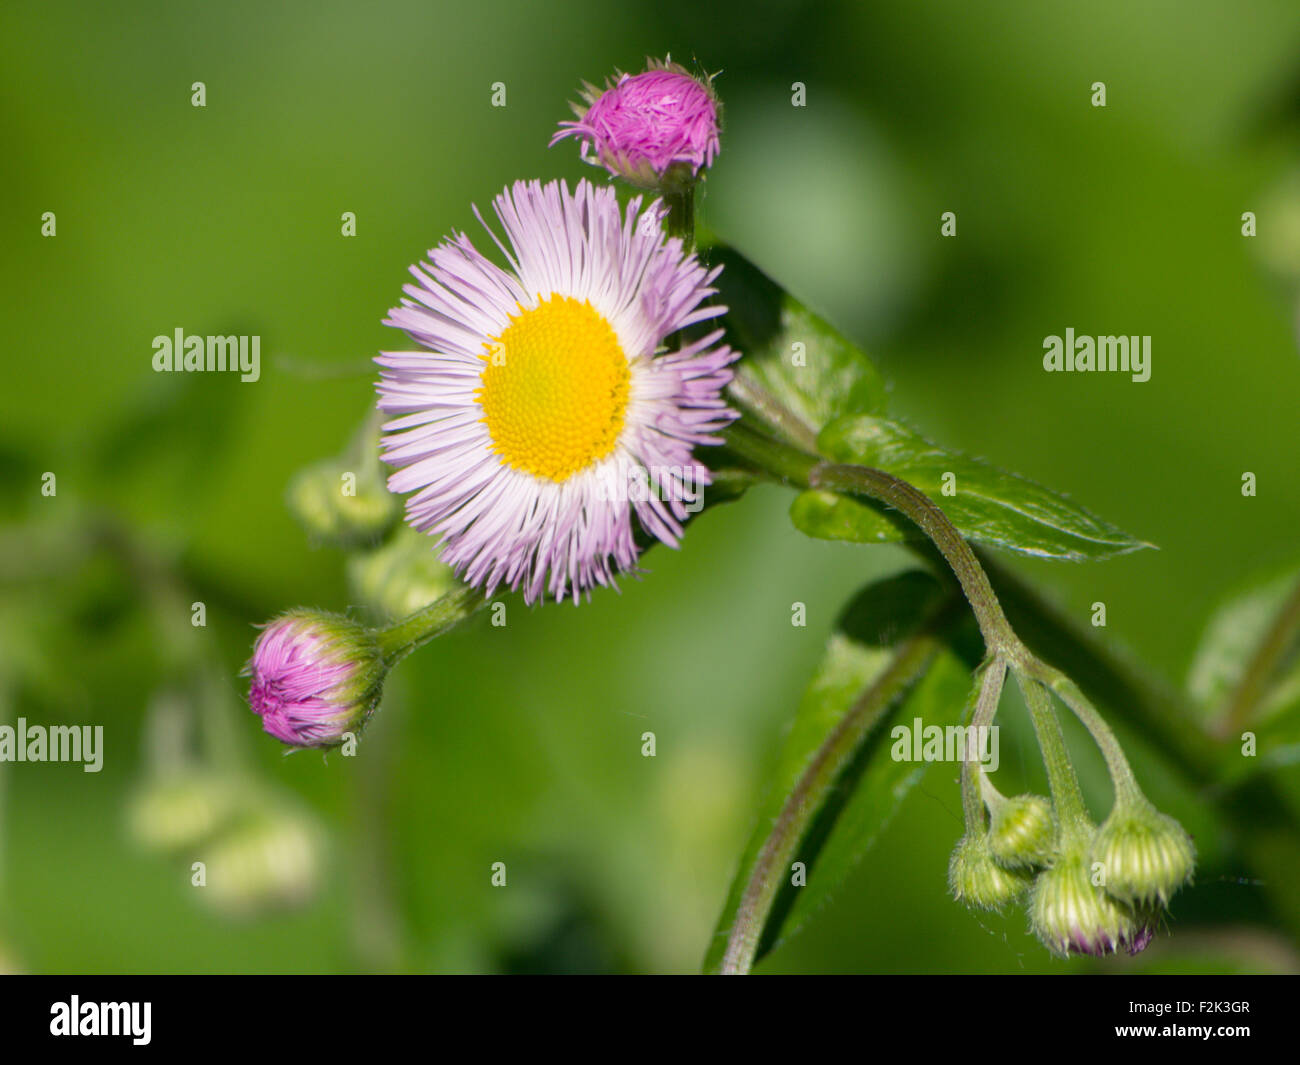 Wild pink flower with yellow center stock photo royalty free image wild pink flower with yellow center mightylinksfo Image collections